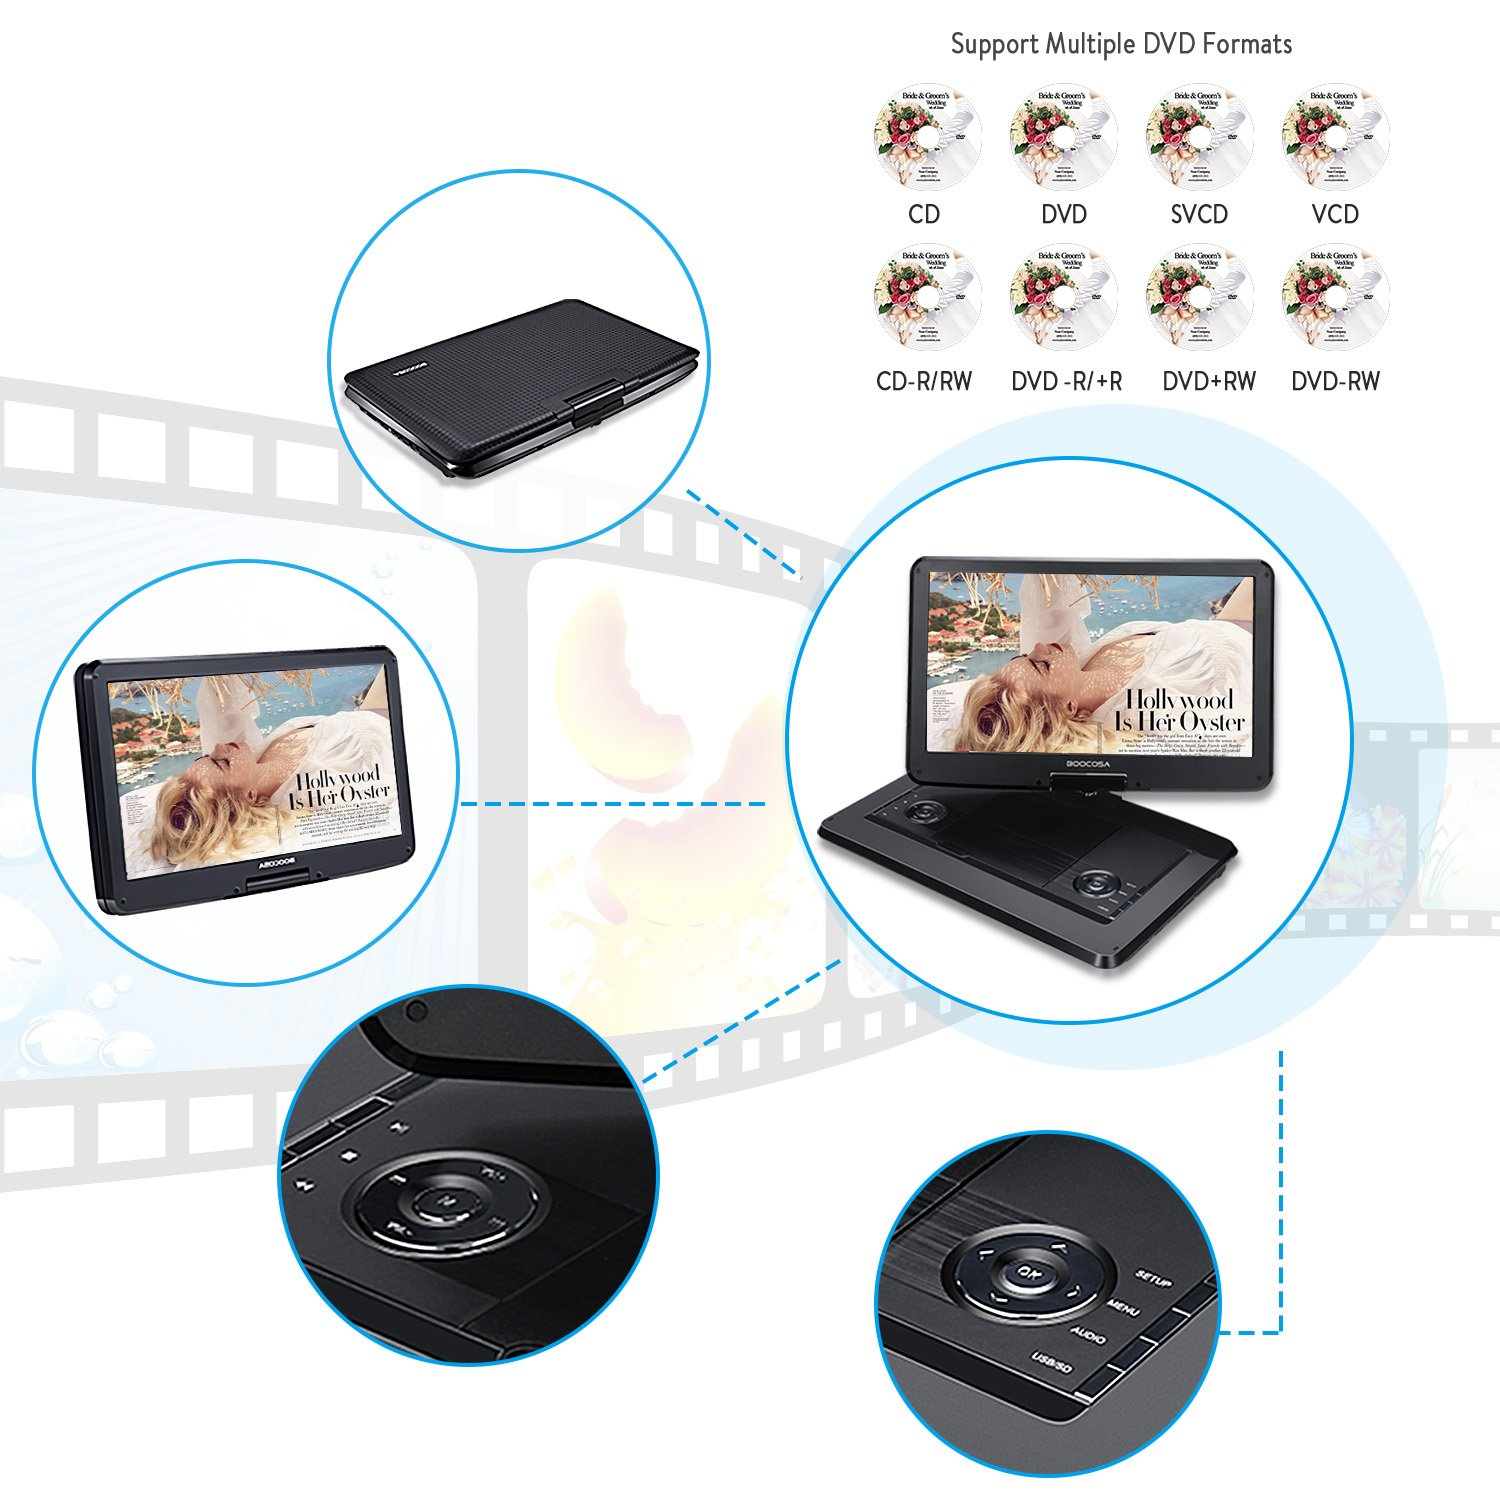 BOOCOSA Portable DVD Player with 270° Swivel TFT LCD Screen, Remote Control, Built-in 5 Hours Rechargeable Battery, Car Charger, AV Cable, Carrying Bag, CD/MMC Card Slot/USB (15.6 Inches, Black) by BOOCOSA (Image #8)